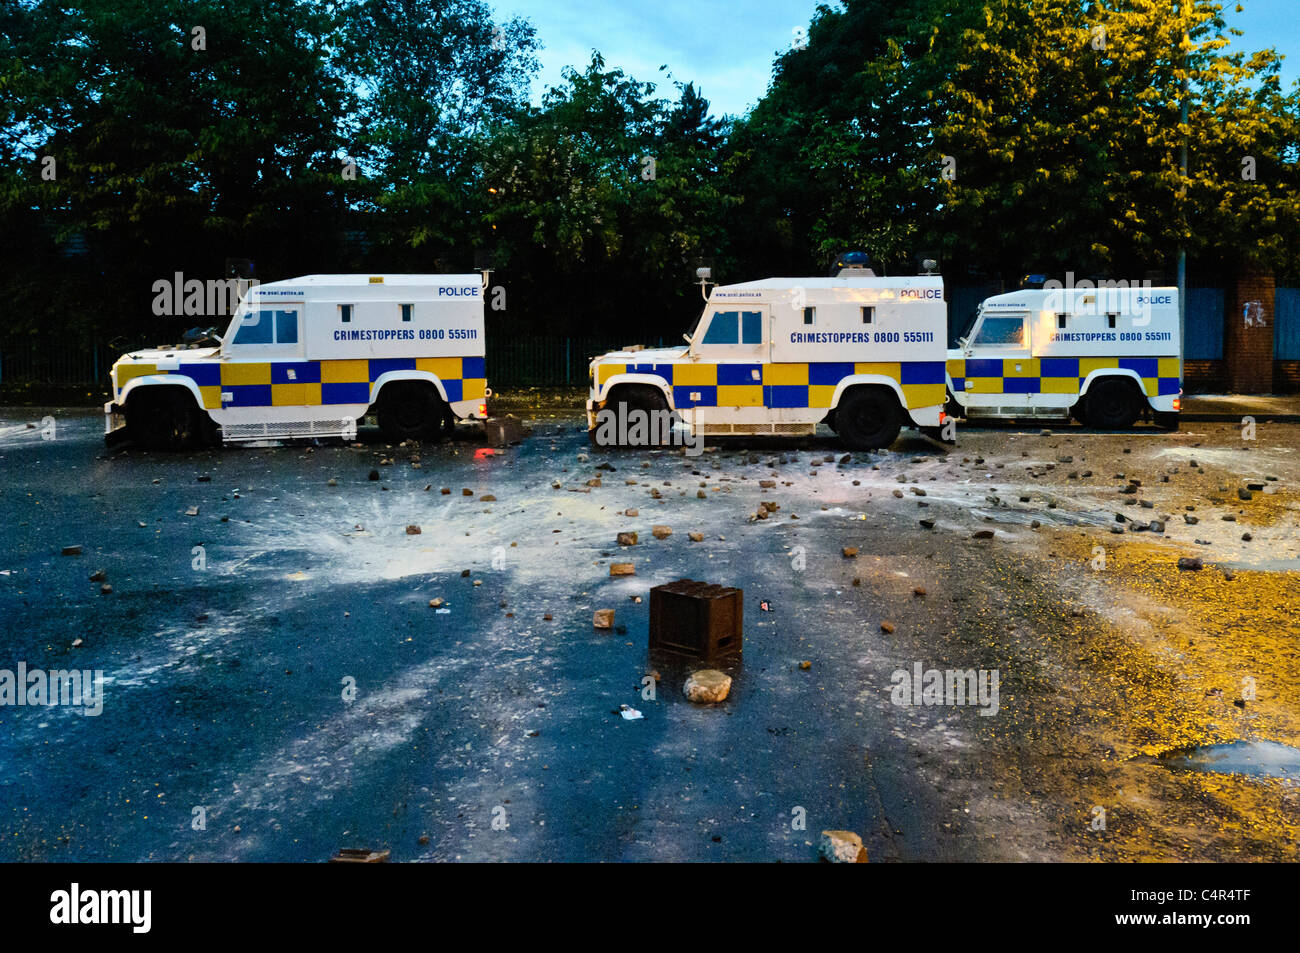 Police come under sustained attack during a second night of rioting. BELFAST 21/06/2011 - Stock Image